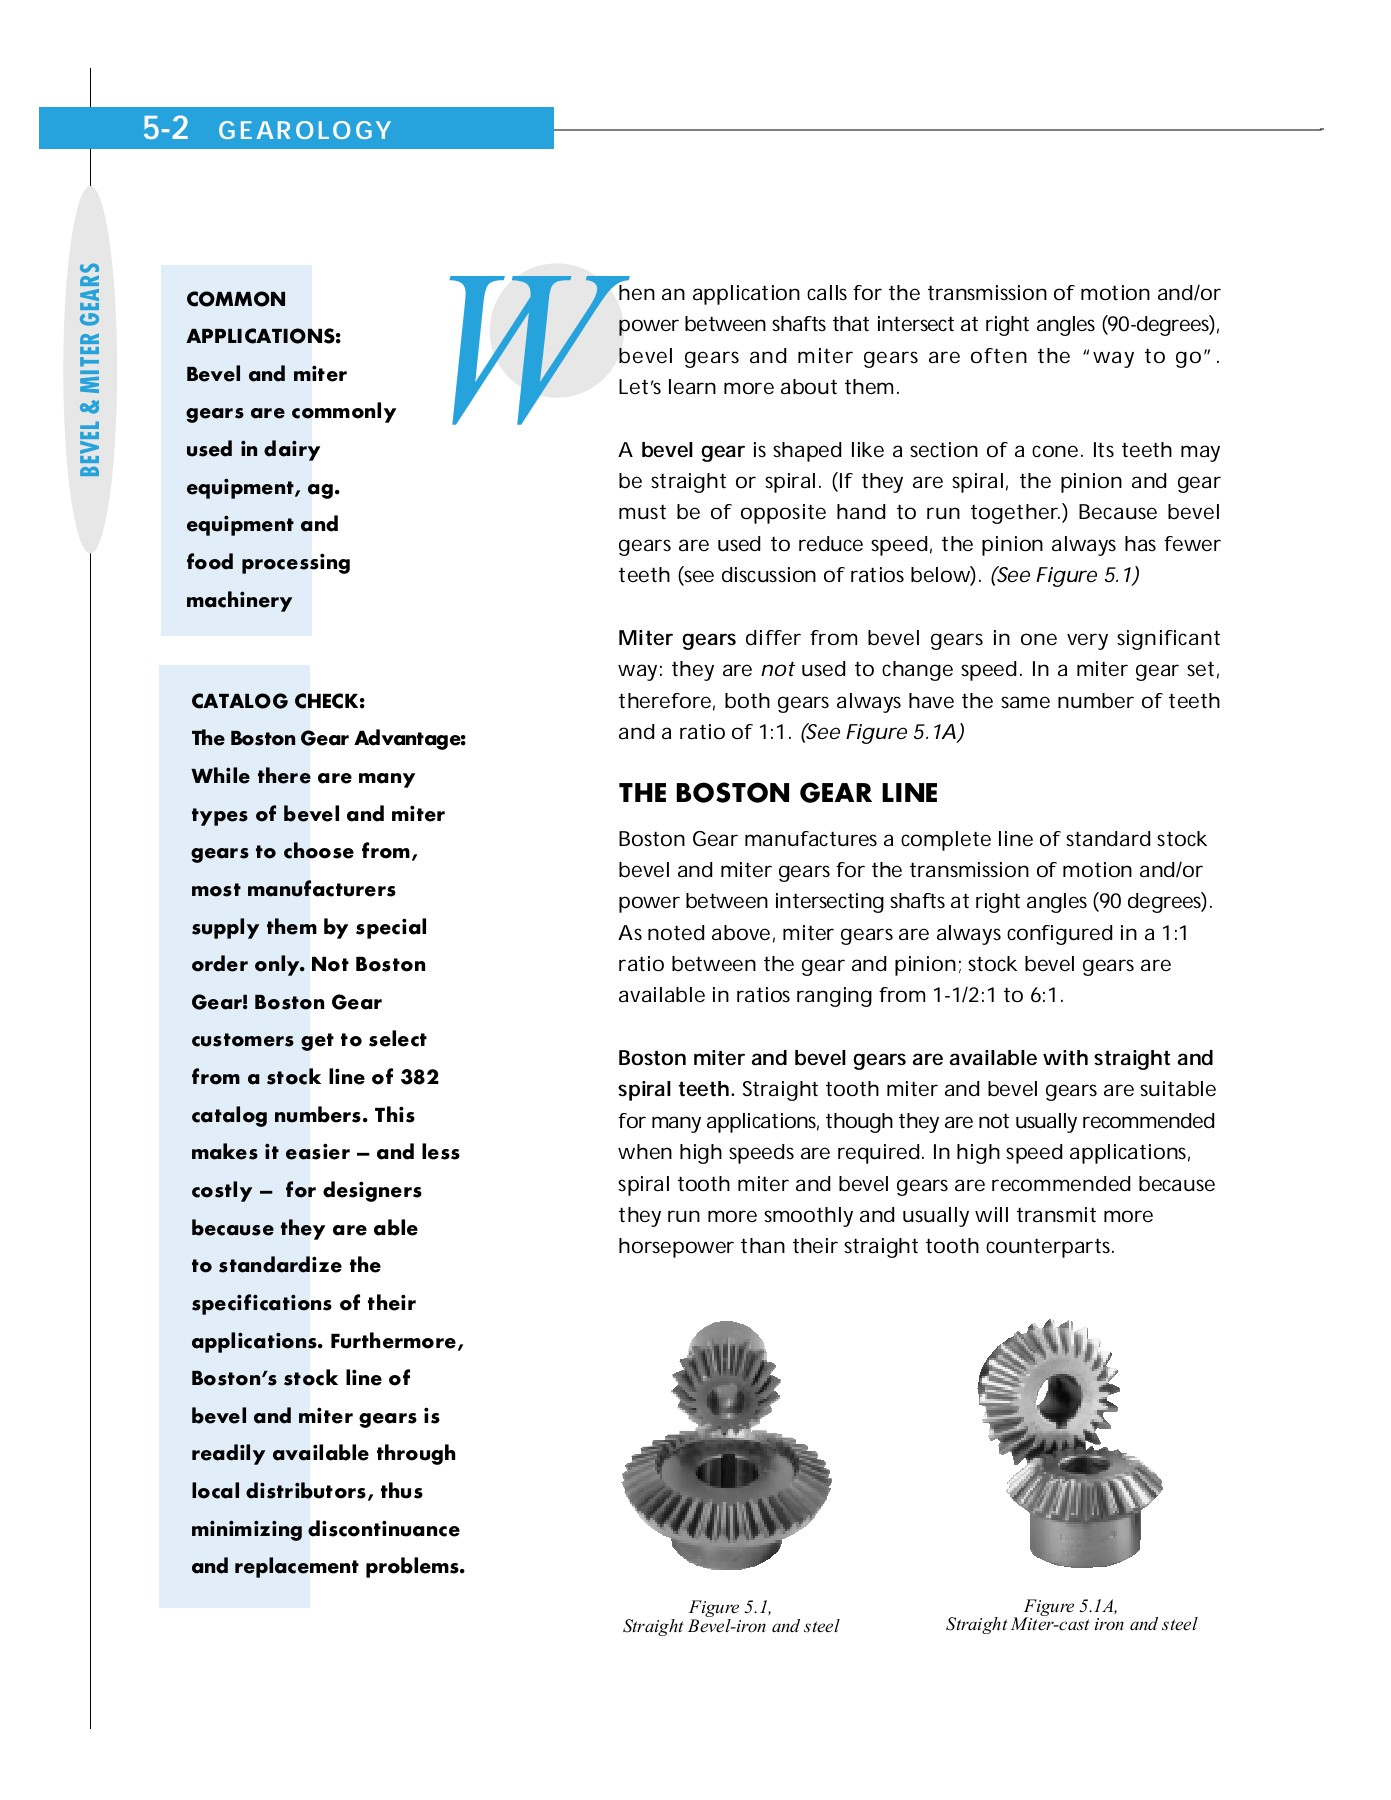 BEVEL AND MITER GEARS 5 - Boston Gear Pages 1 - 15 - Text